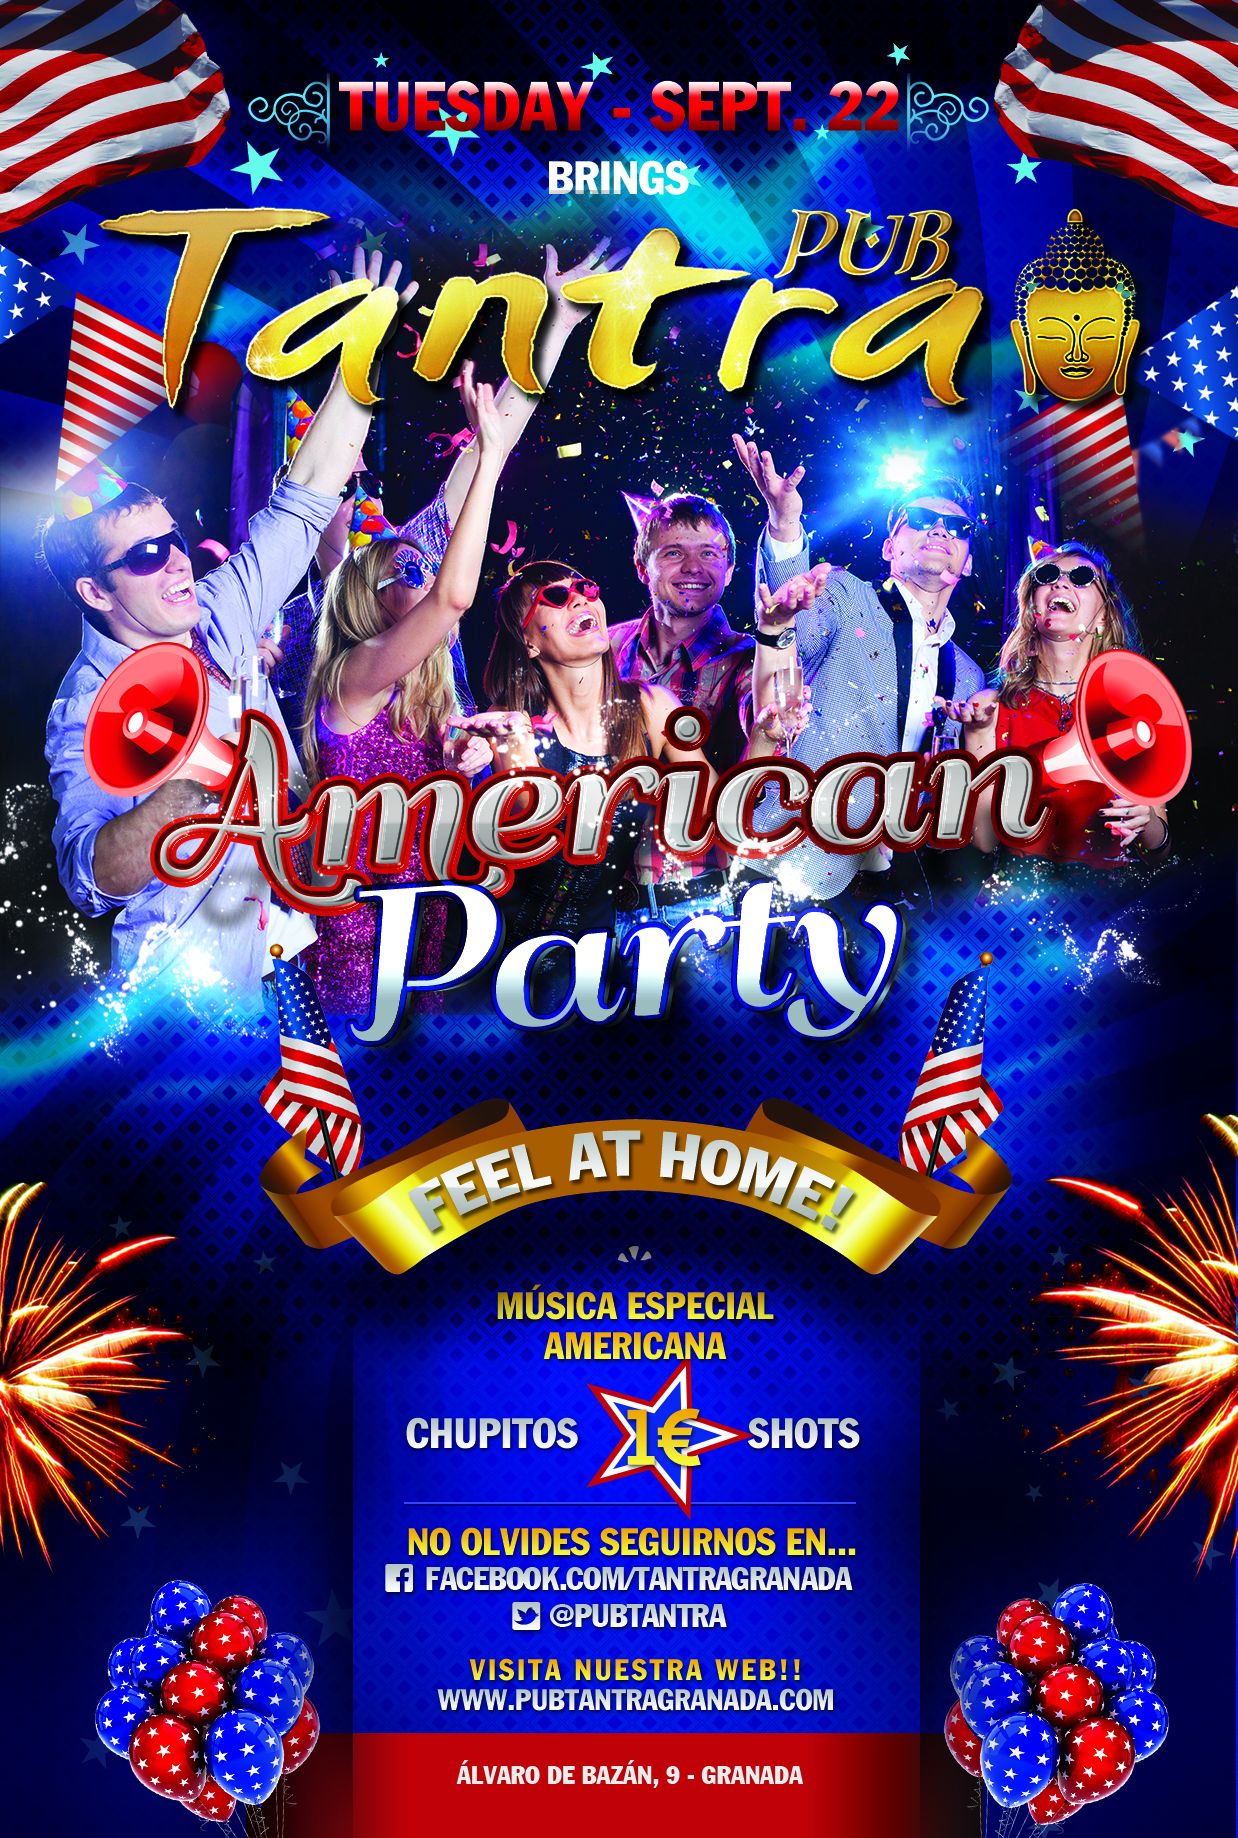 TUESDAY-AMERICAN-PARTY